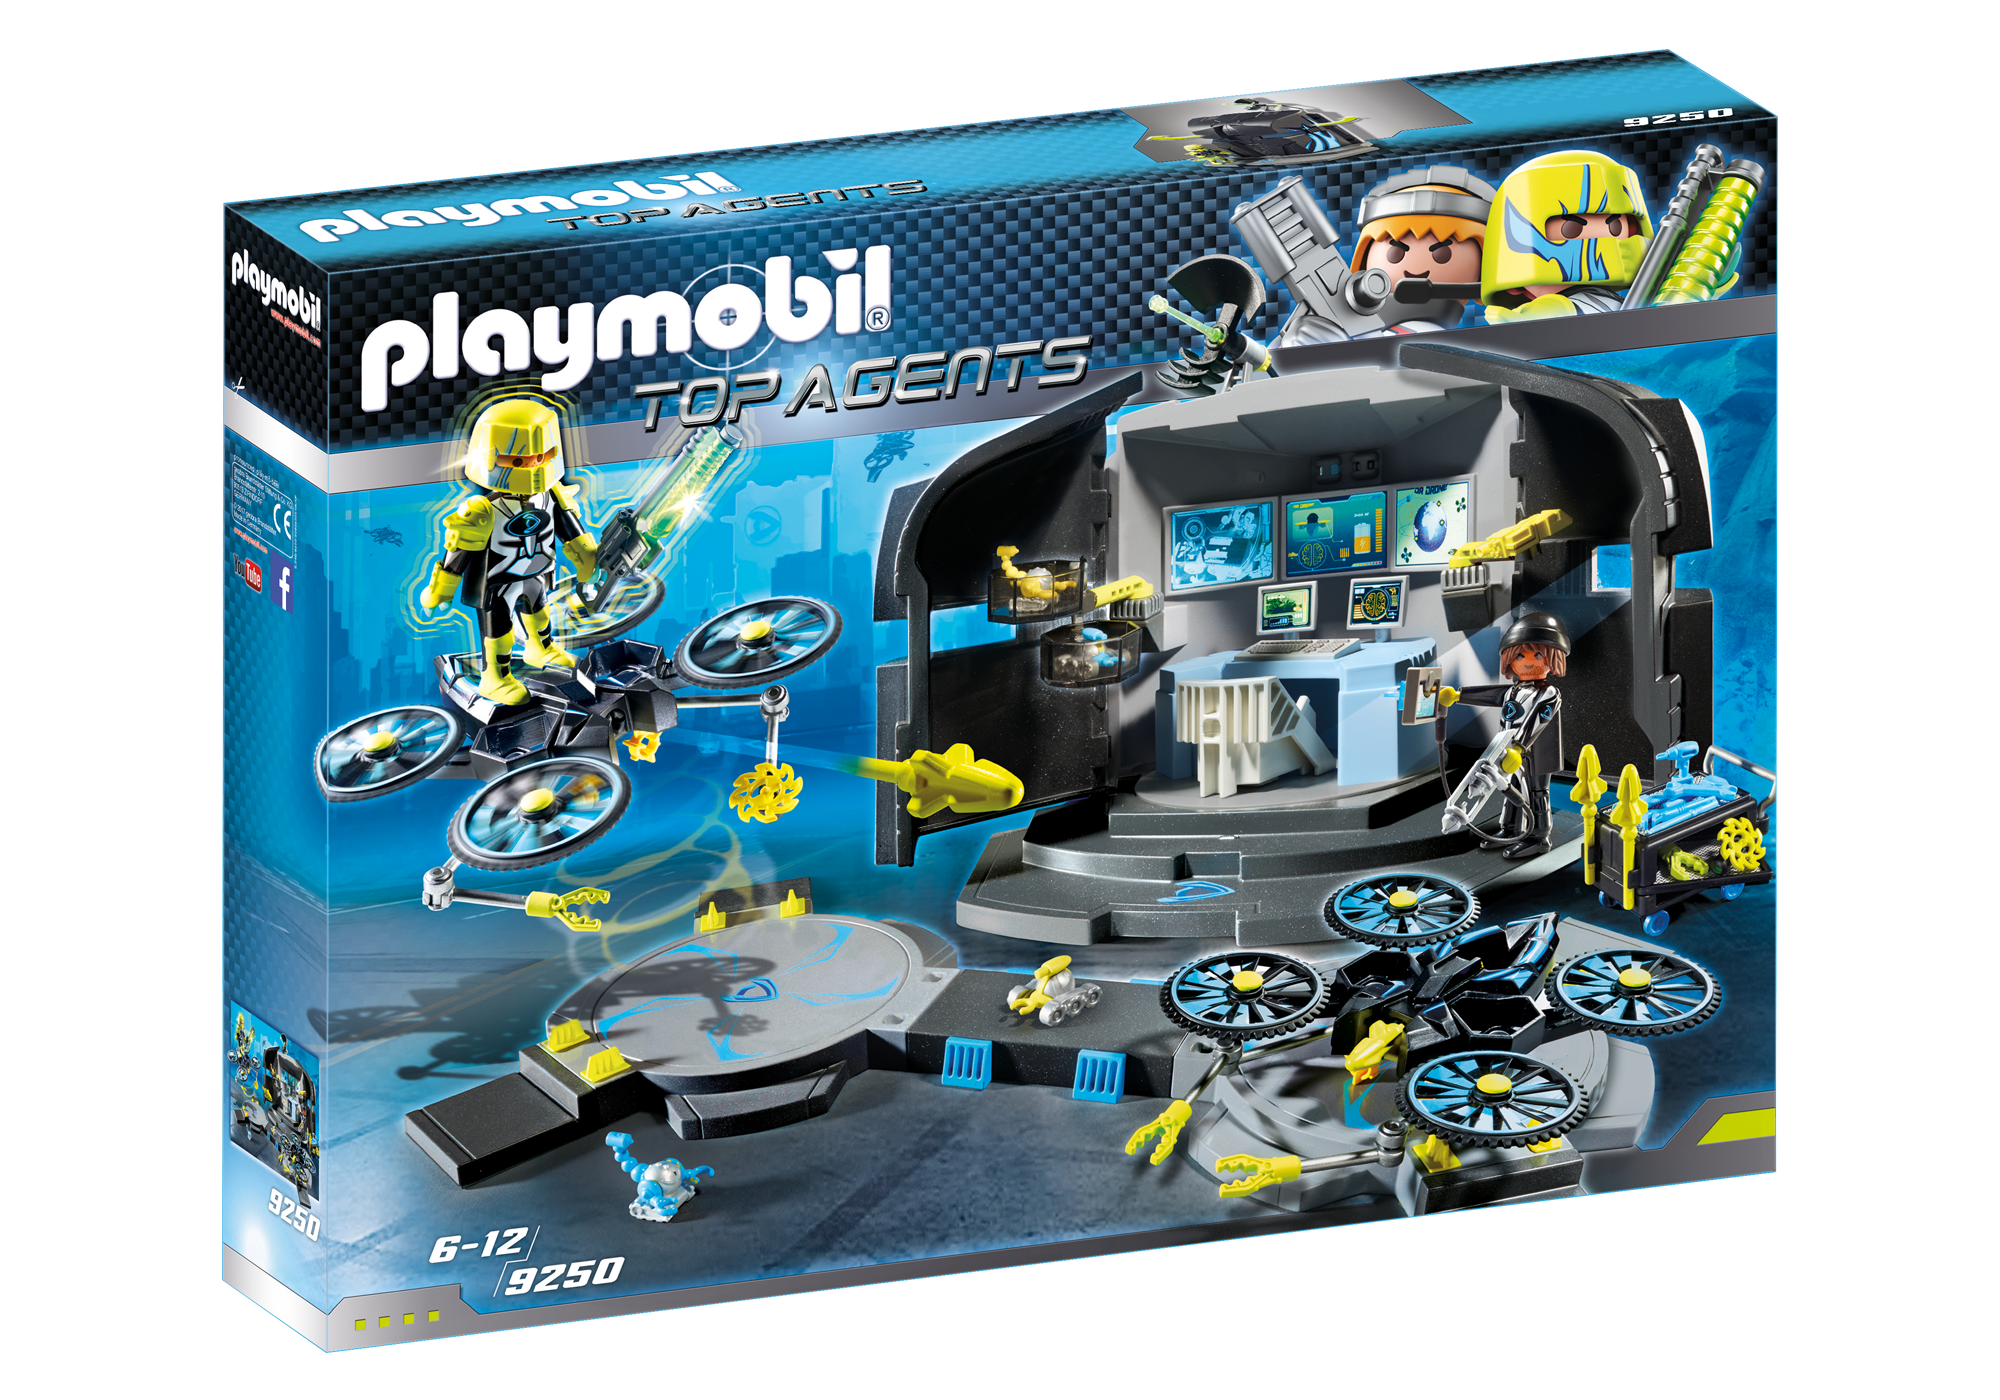 http://media.playmobil.com/i/playmobil/9250_product_box_front/Dr. Drone's Command Base